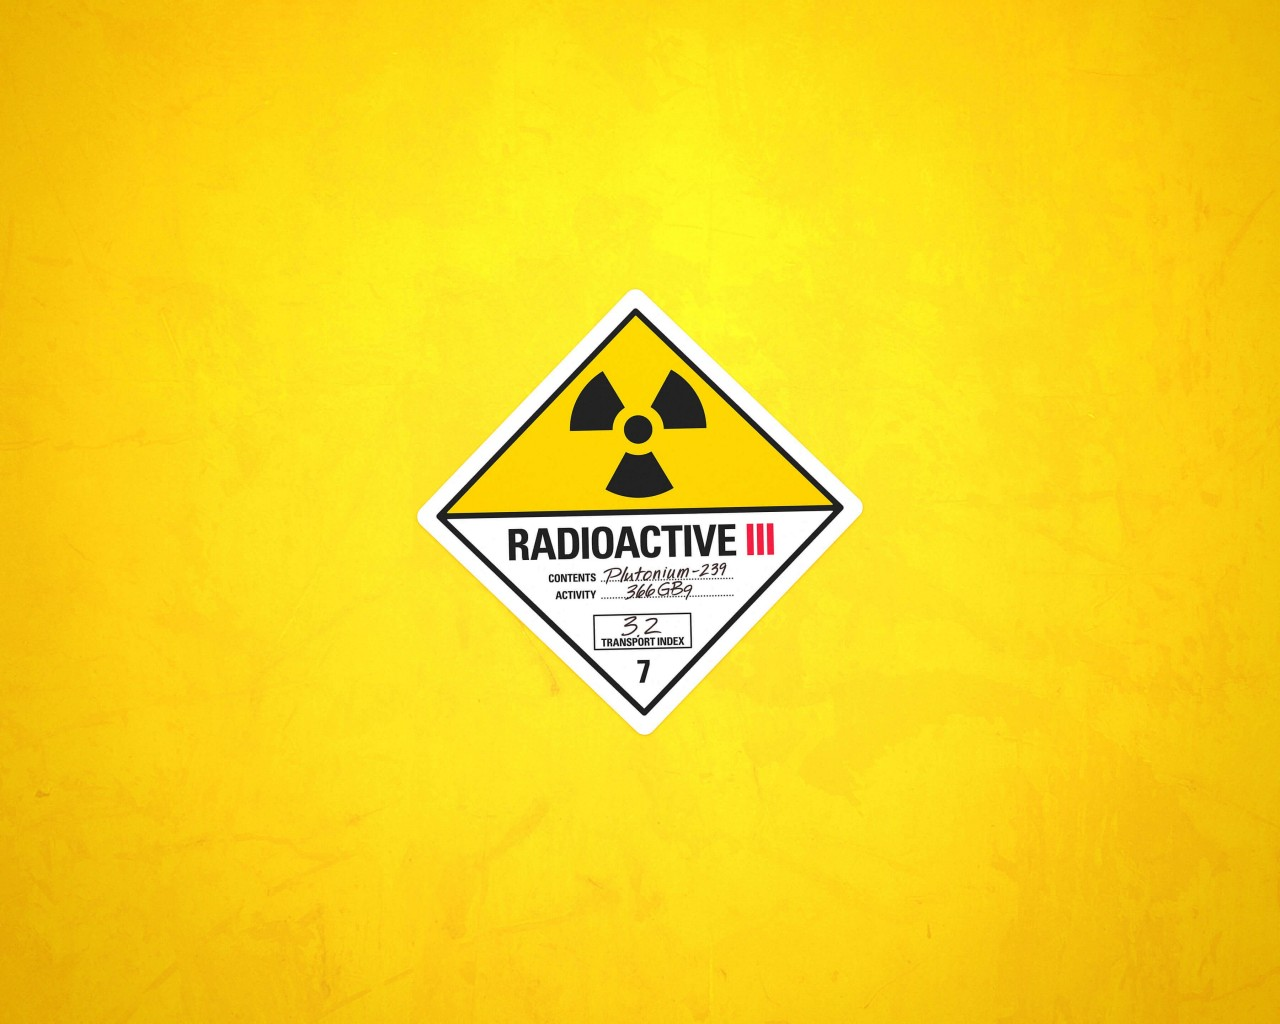 Radioactive Wallpaper for Desktop 1280x1024